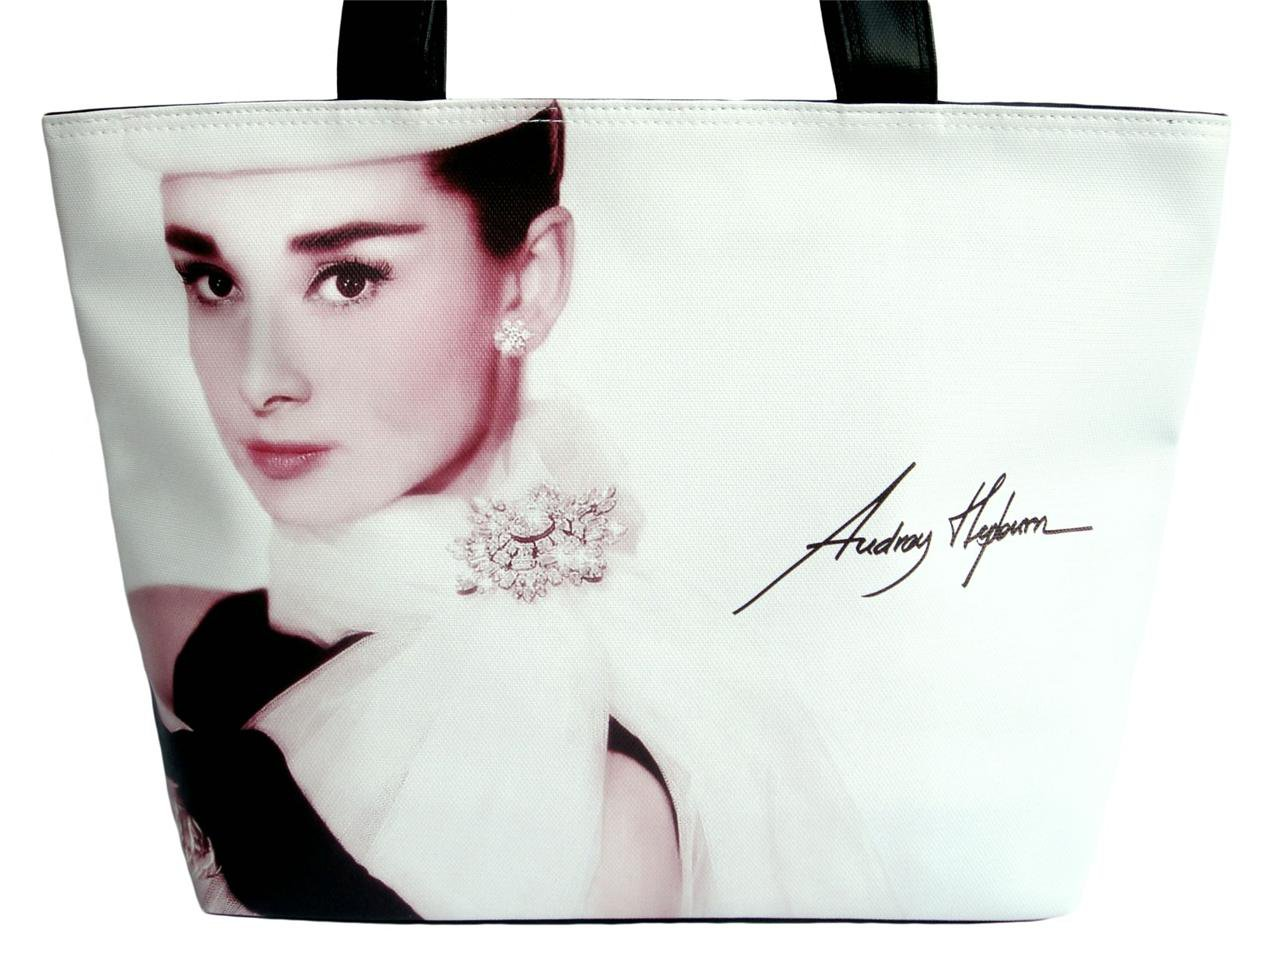 Audrey Hepburn Signature Fashion Wide Tote Shoulder Bag Purse